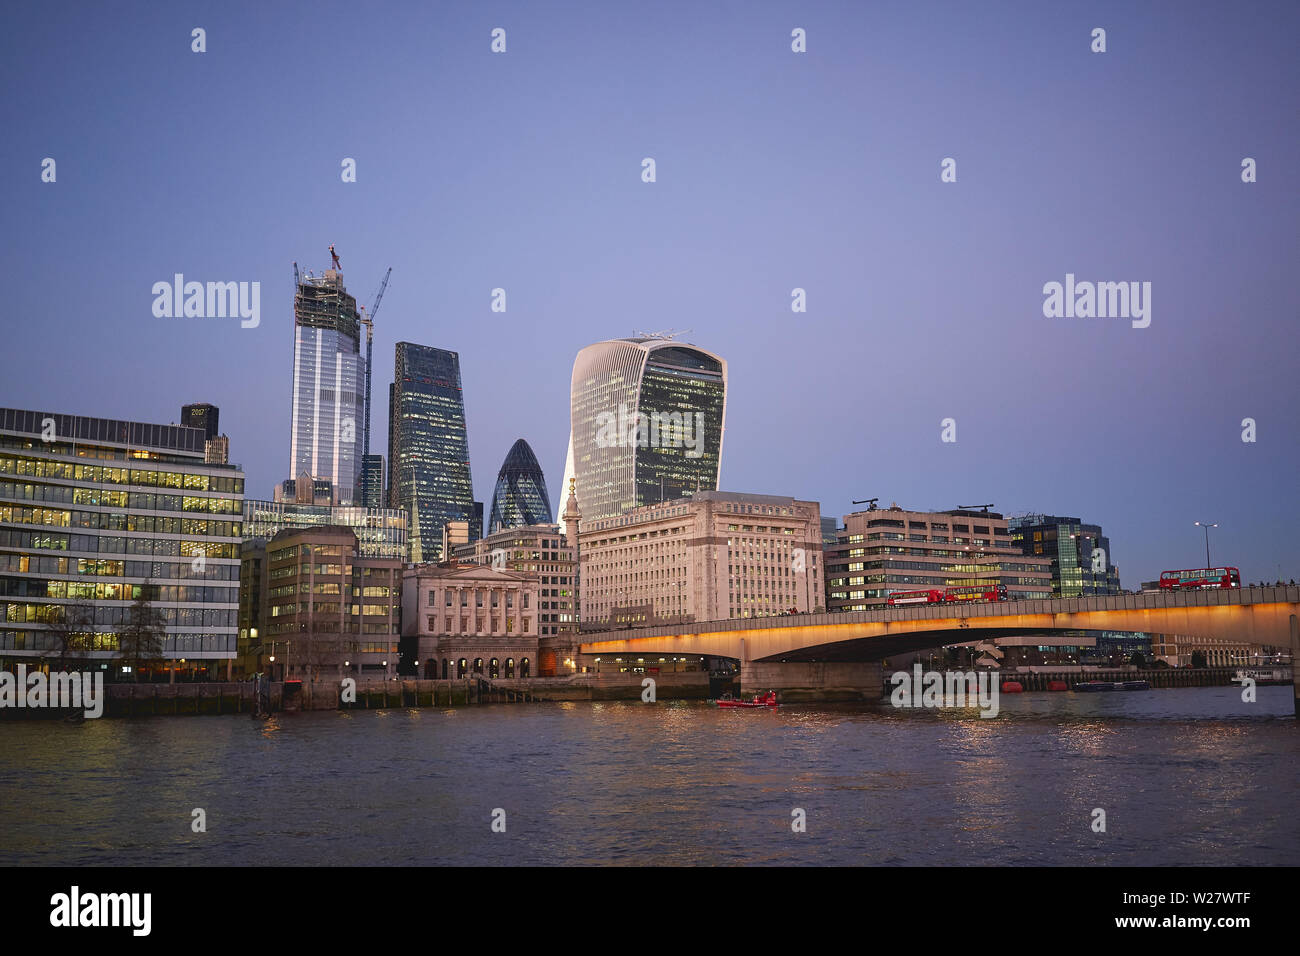 London, UK - February, 2019. View of the City of London, famous financial district, with new skyscrapers under construction. Stock Photo